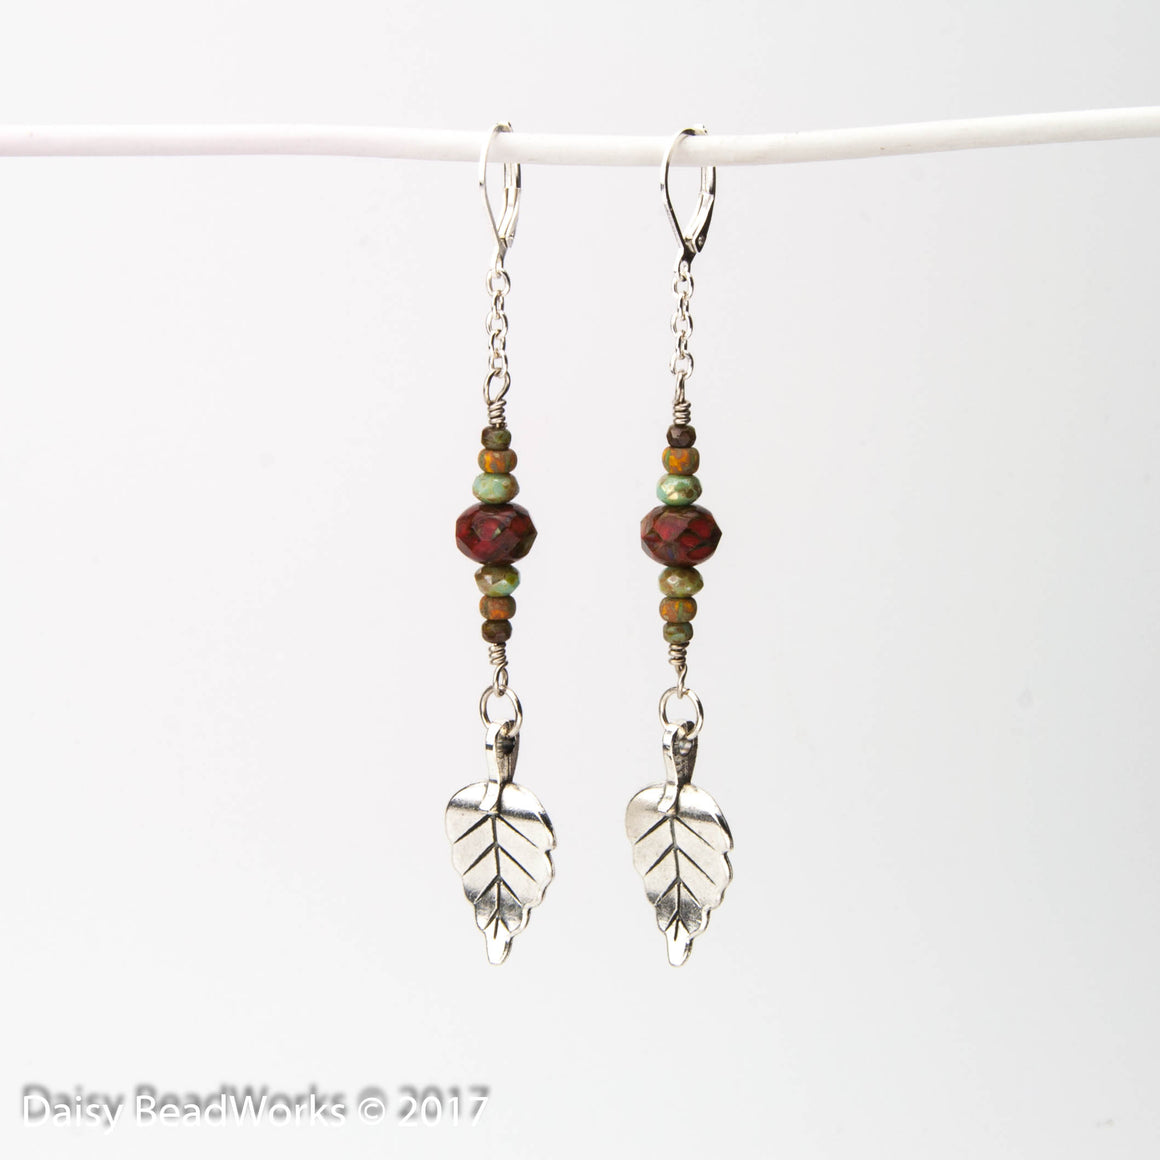 Falling Leaves Shoulder Duster Earrings